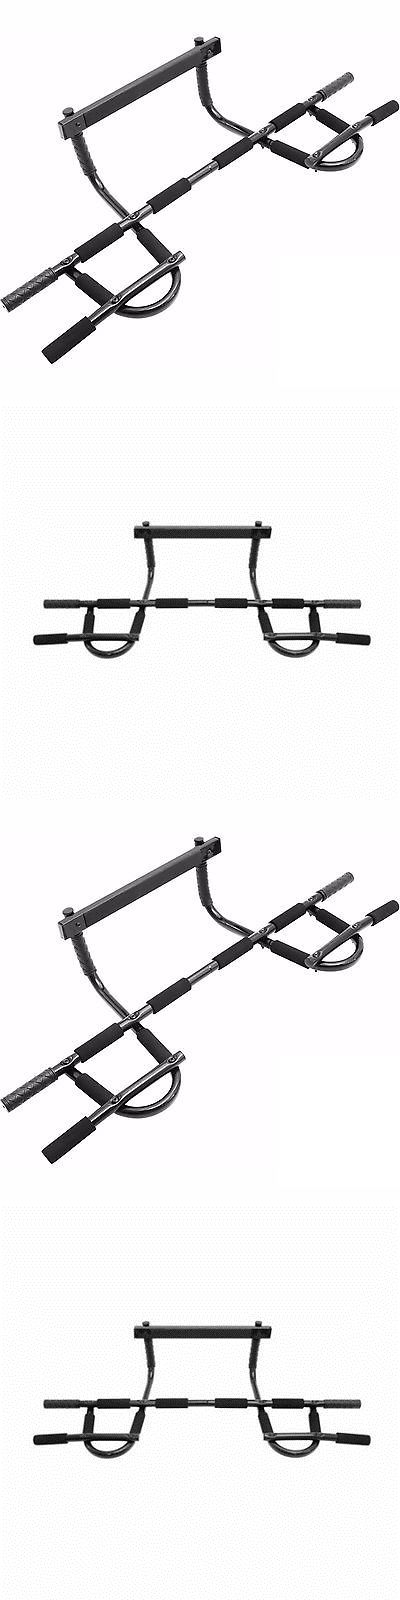 Pull Up Bars 179816: Doorway Gym Premium Home Fitnes Pull-Ups And Upper Body Fits Easy Onto Doorframe -> BUY IT NOW ONLY: $30.88 on eBay!